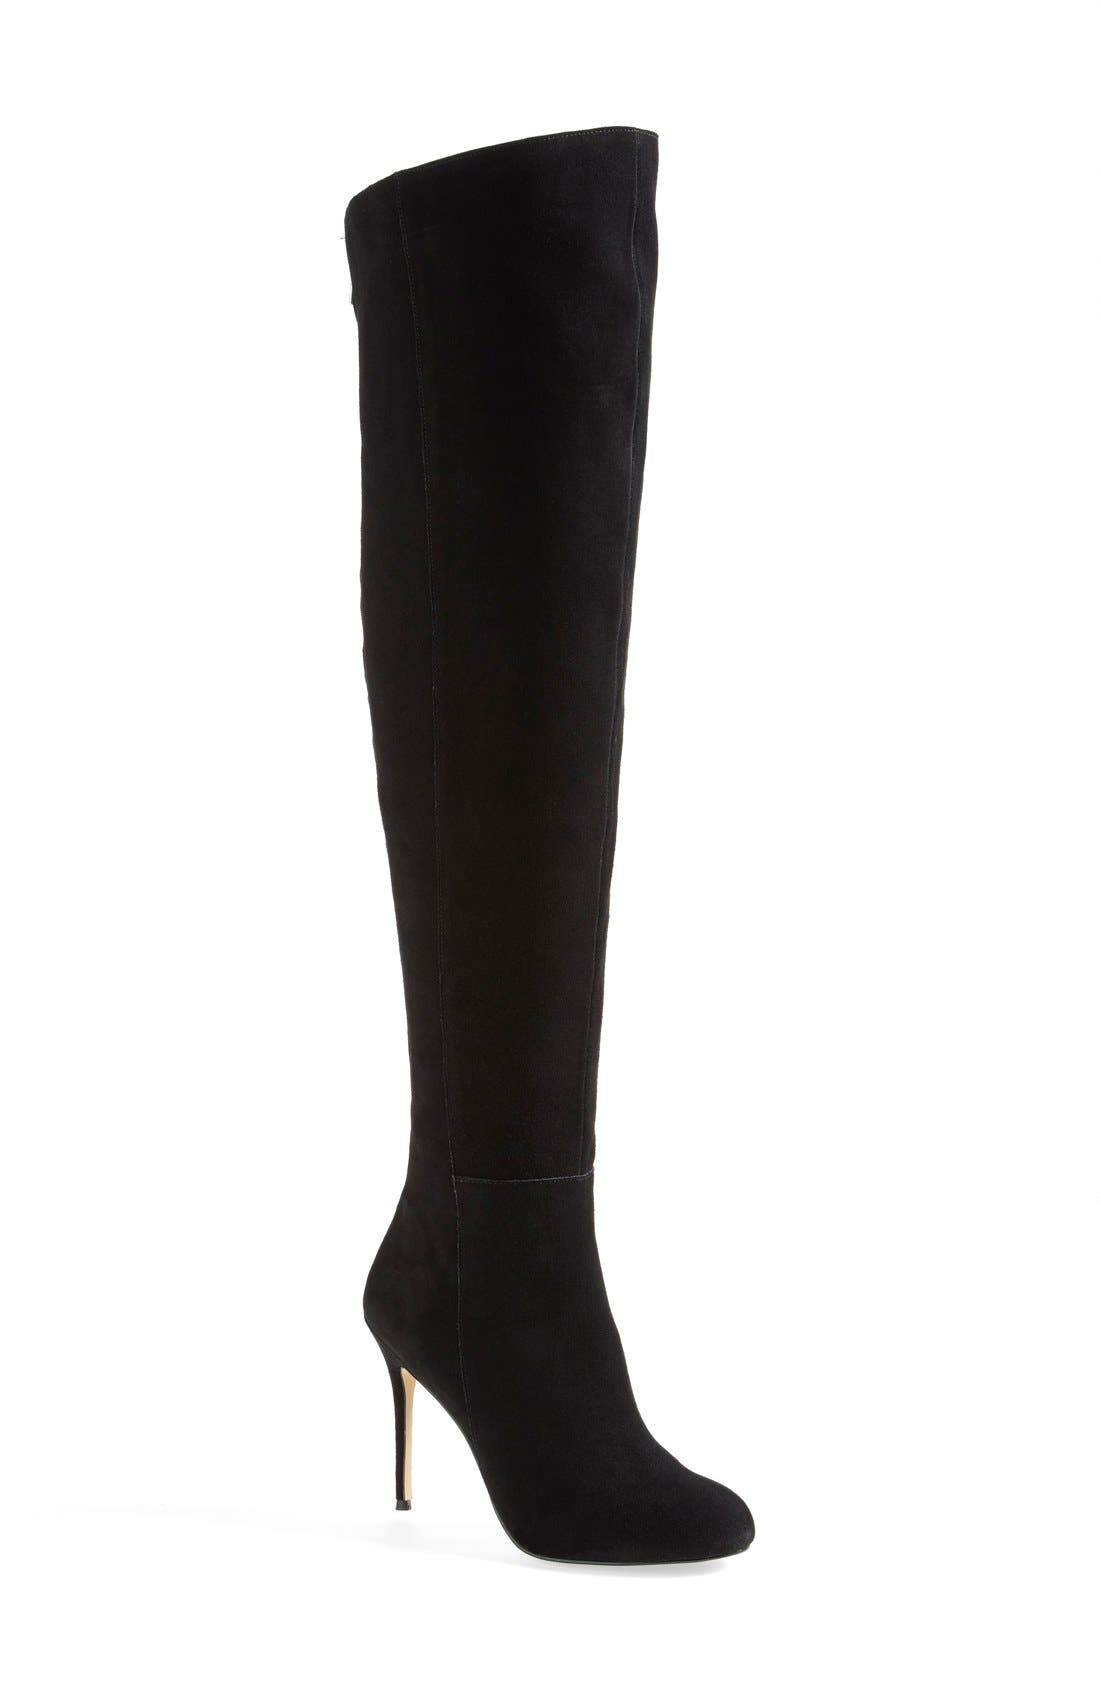 Alternate Image 1 Selected - DV by Dolce Vita 'Keva' Over-The-Knee Boot (Women)